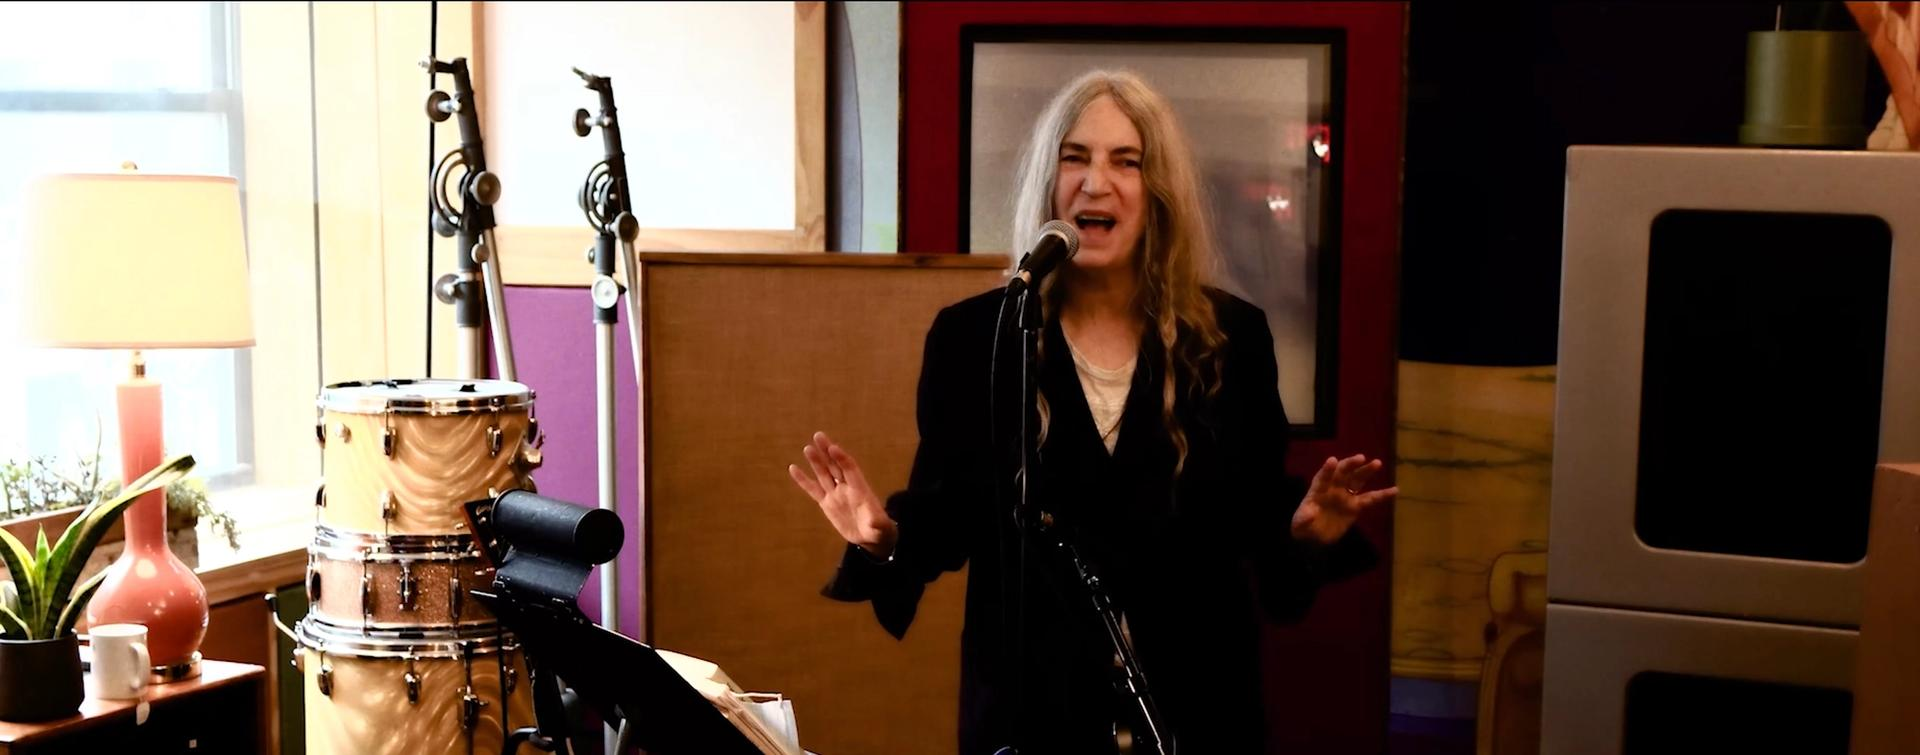 Patti Smith is releasing a 30-minute video of music and poetry on the CIRCA YouTube channel on 20 January at 20:21 GMT/15:21 EST Still courtesy of the artist and CIRCA